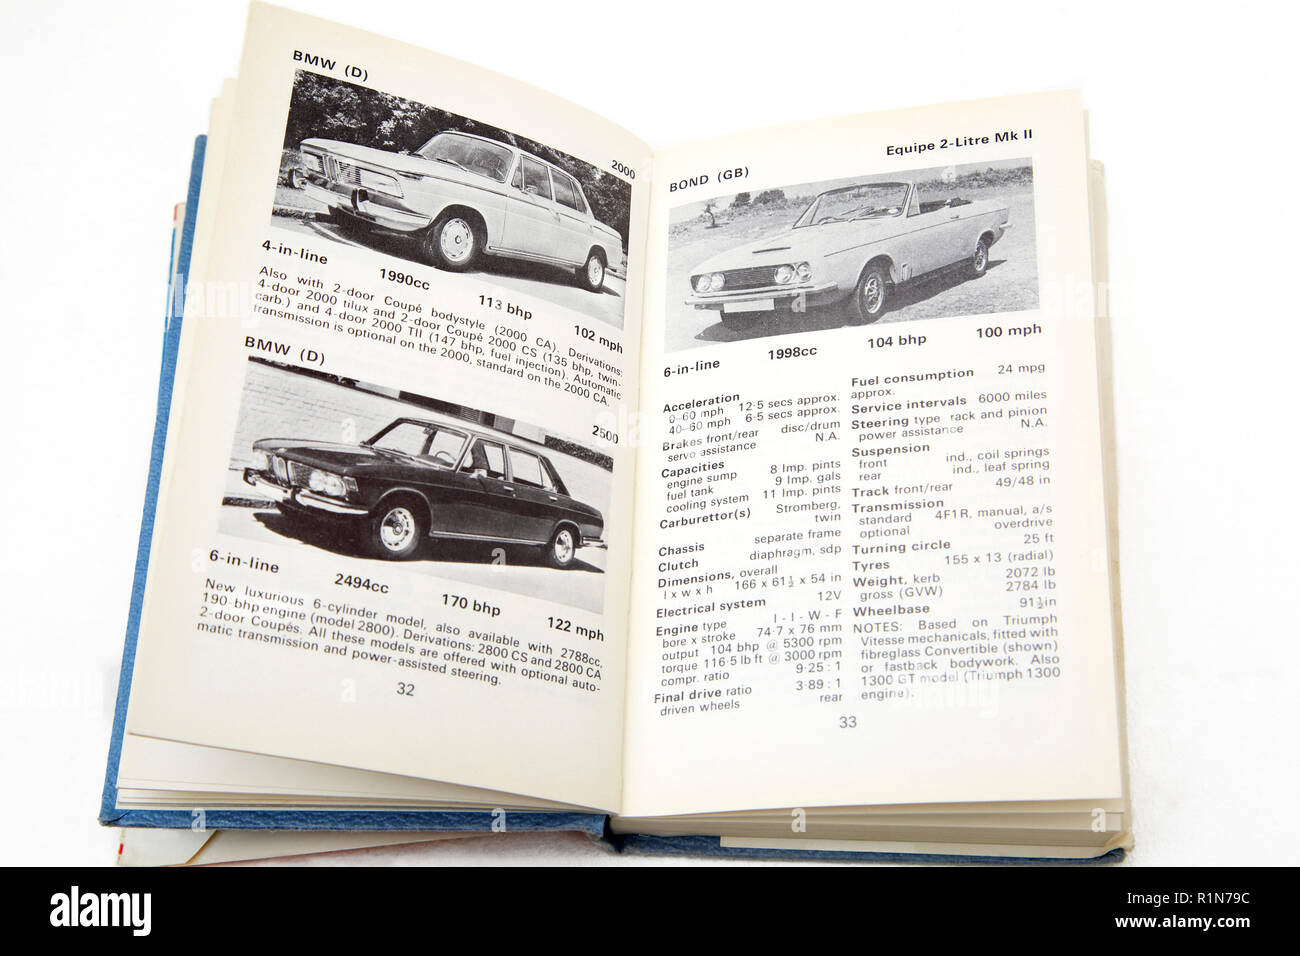 Old Book The Observer's Book of Automobiles - Stock Image